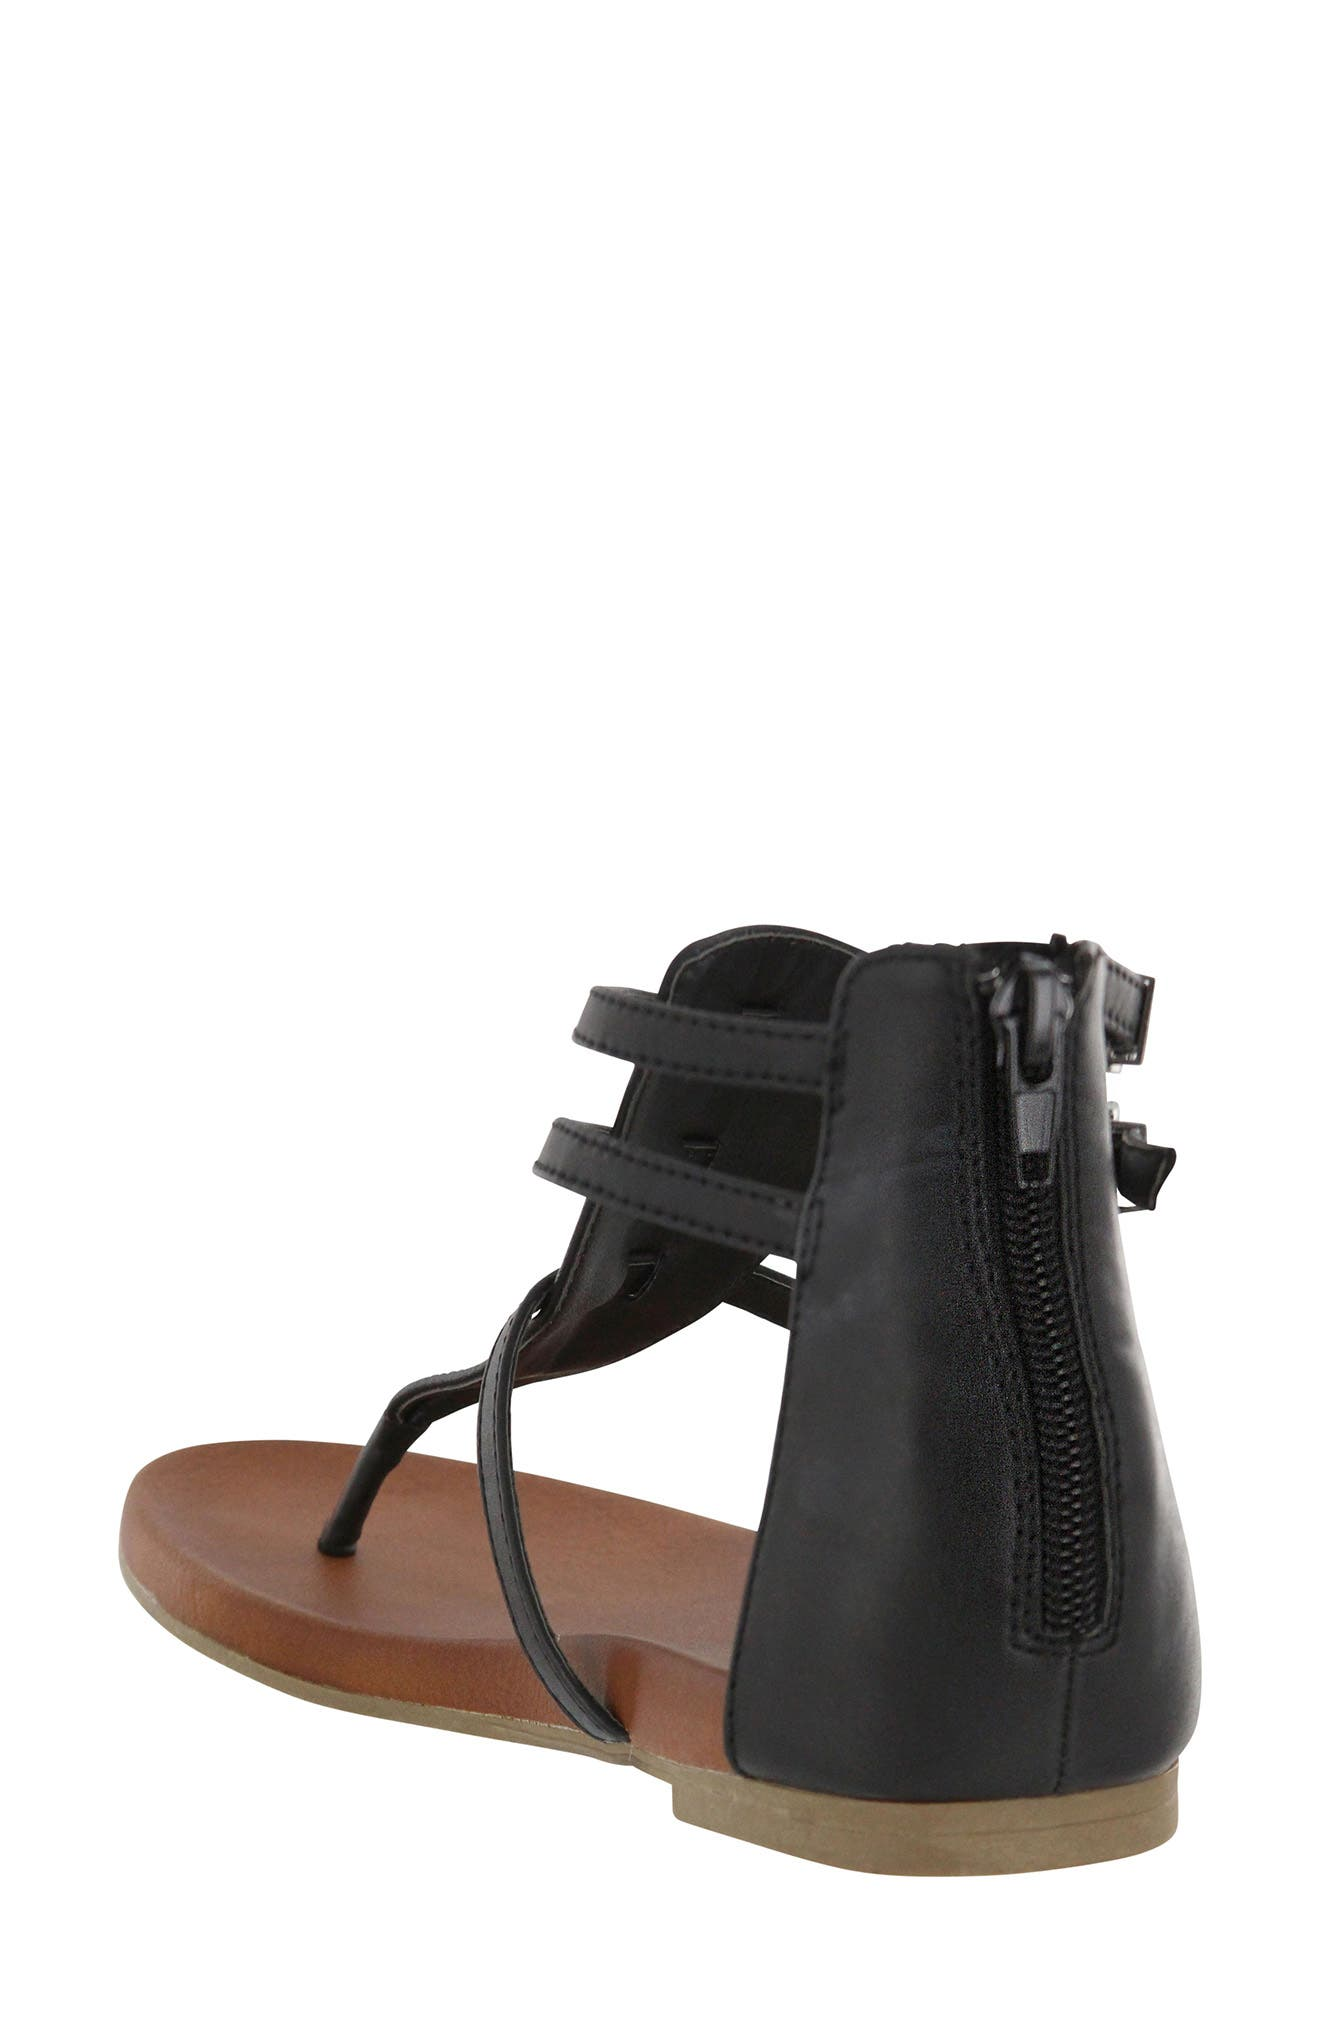 Dashiell V-Strap Sandal,                             Alternate thumbnail 2, color,                             Black